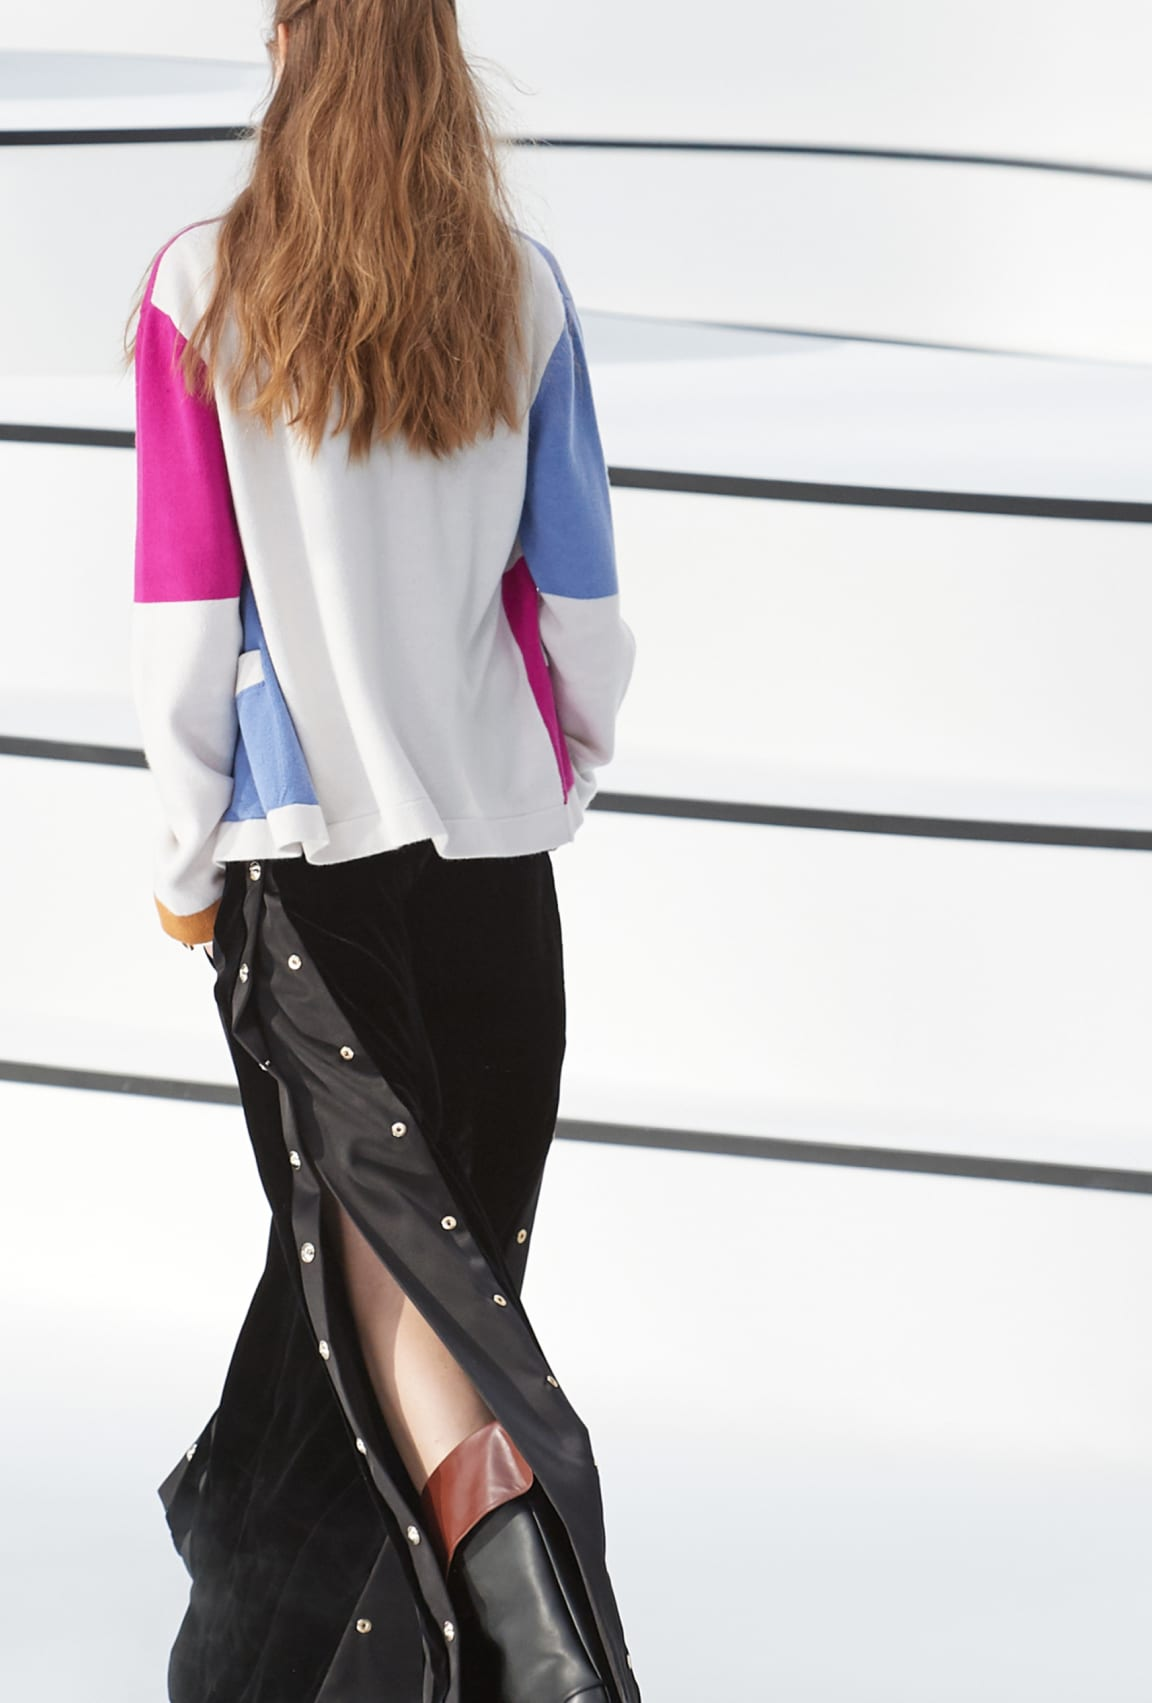 Image 4 - Look  13